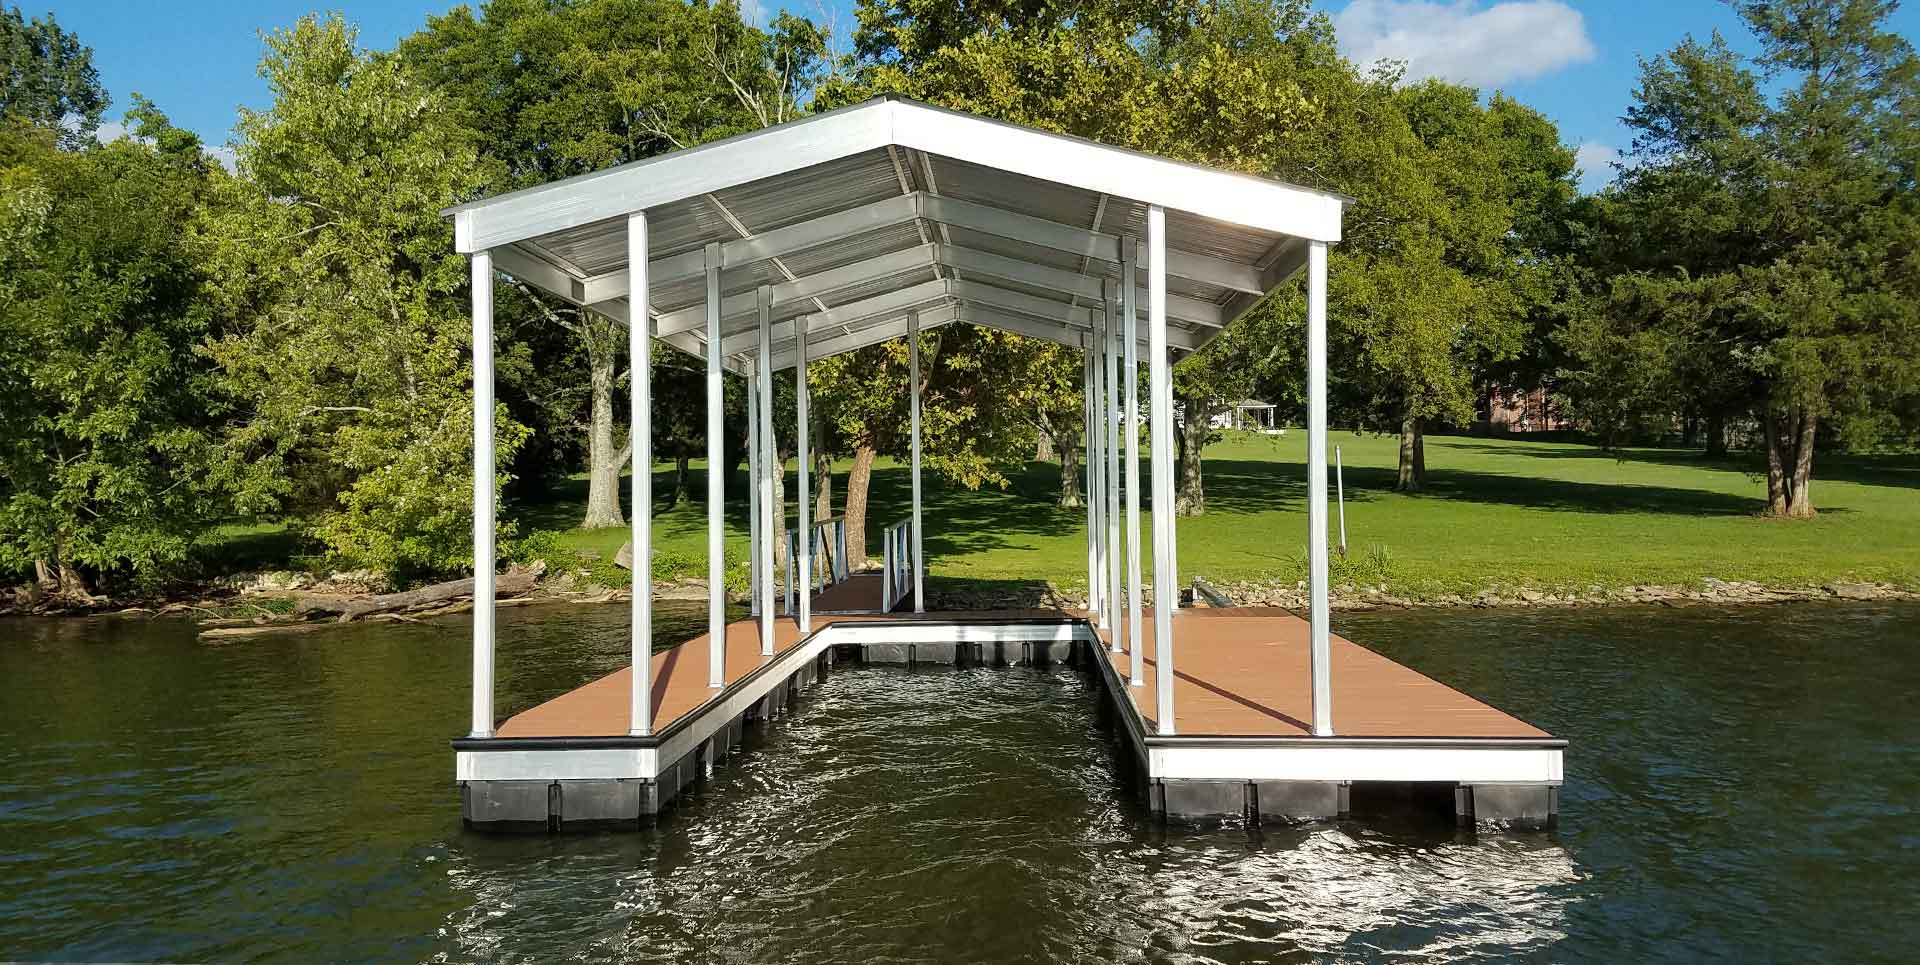 Aluminum boat dock for single boat on river with trees in background